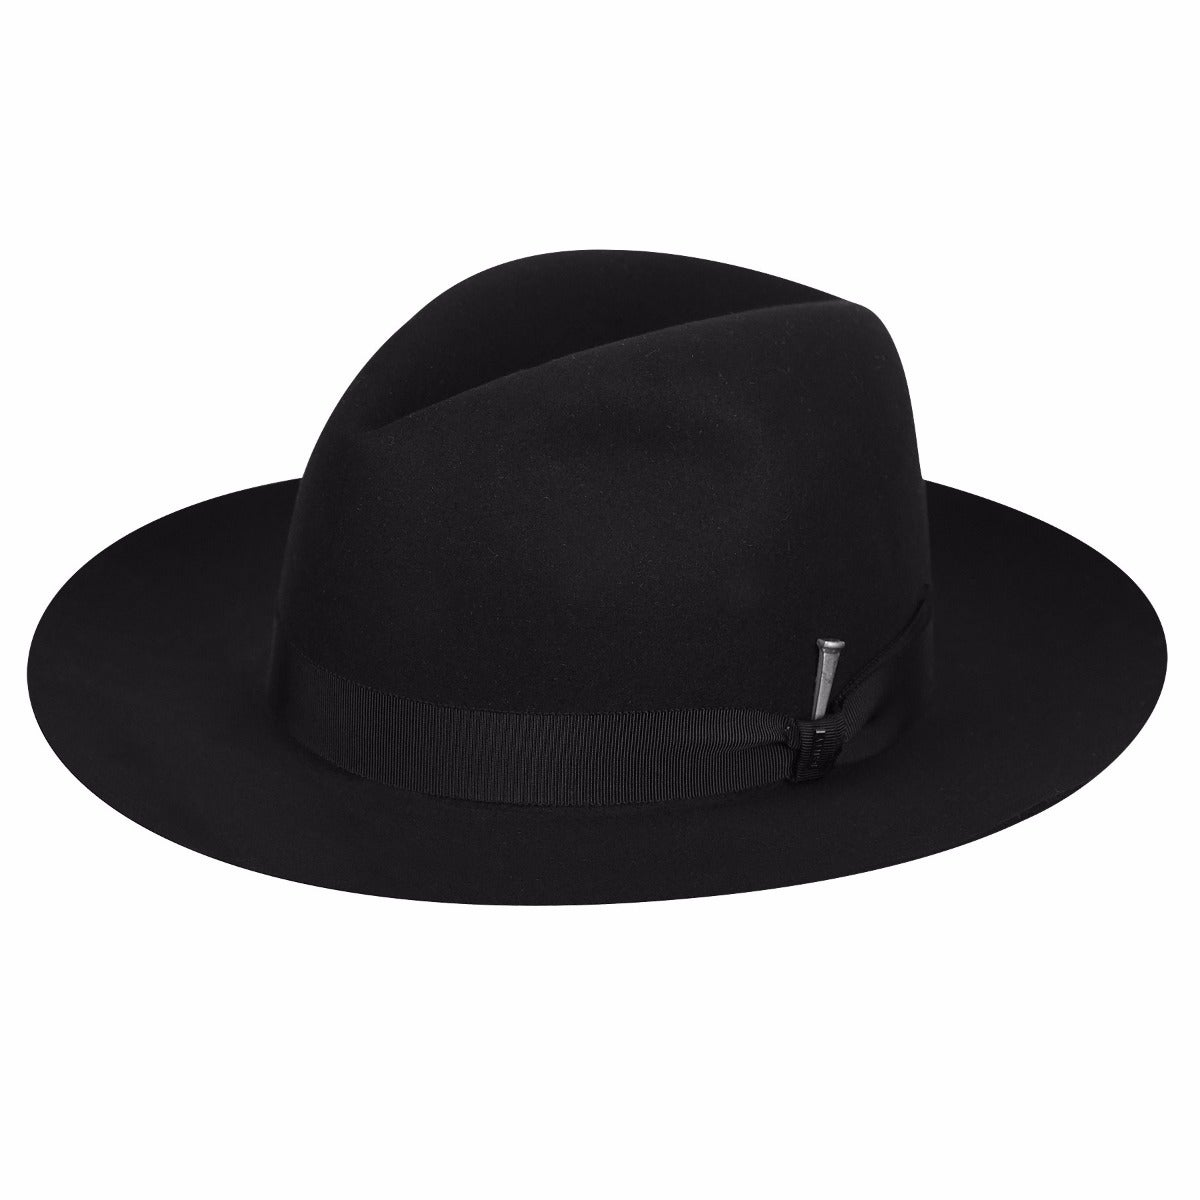 1960s – 70s Style Men's Hats Ralat Fedora $368.00 AT vintagedancer.com